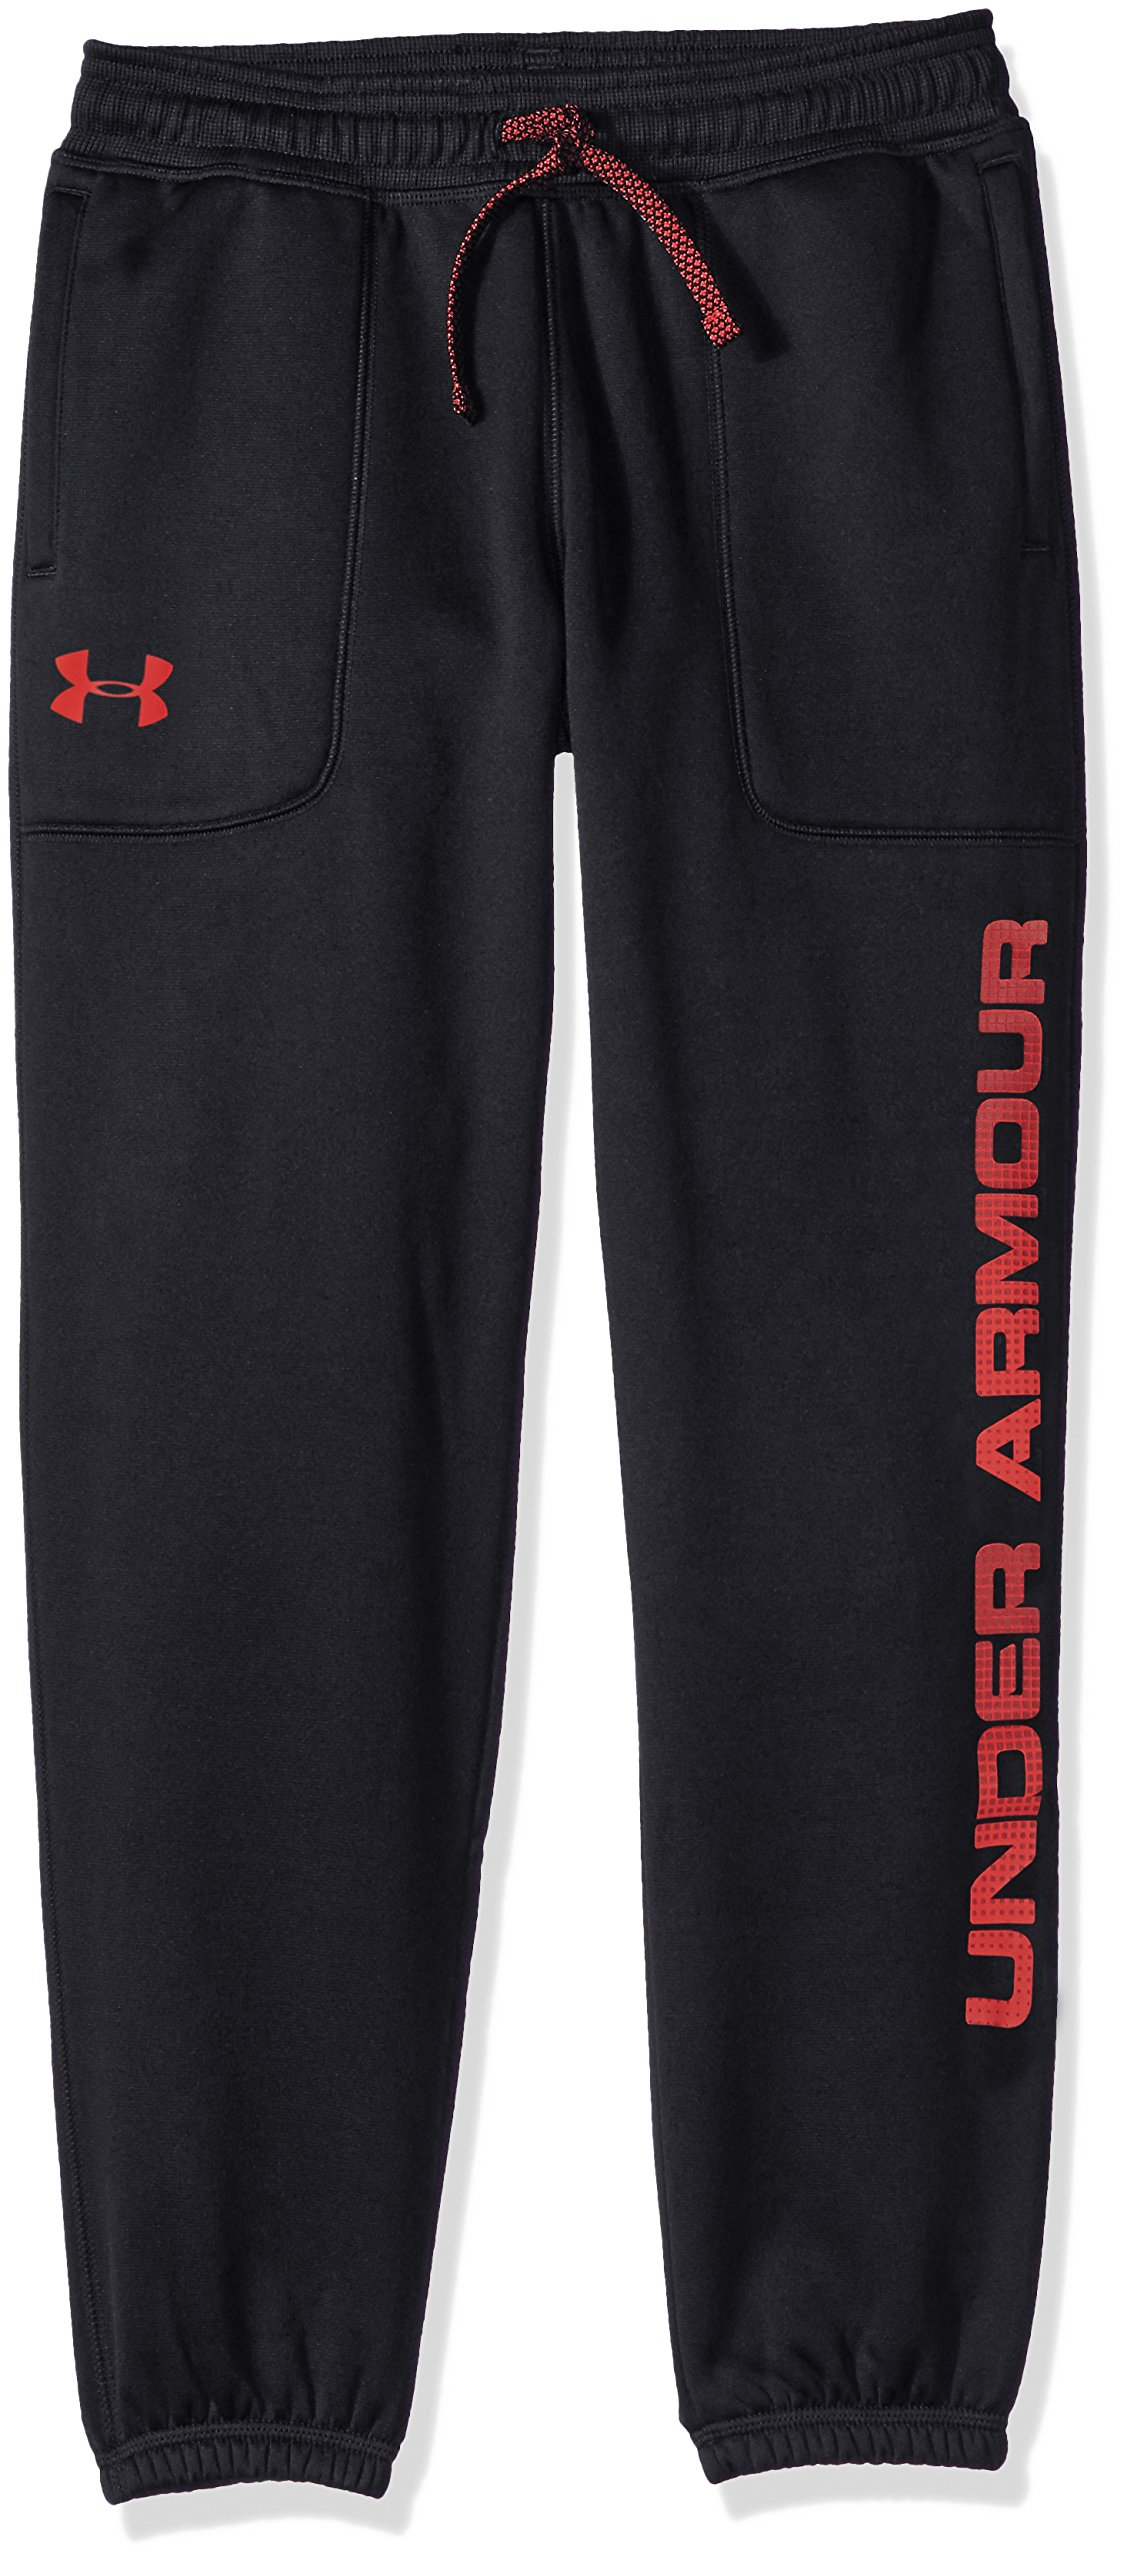 Under Armour Boys' Armour Fleece Branded Joggers,Black /Red, Youth X-Large by Under Armour